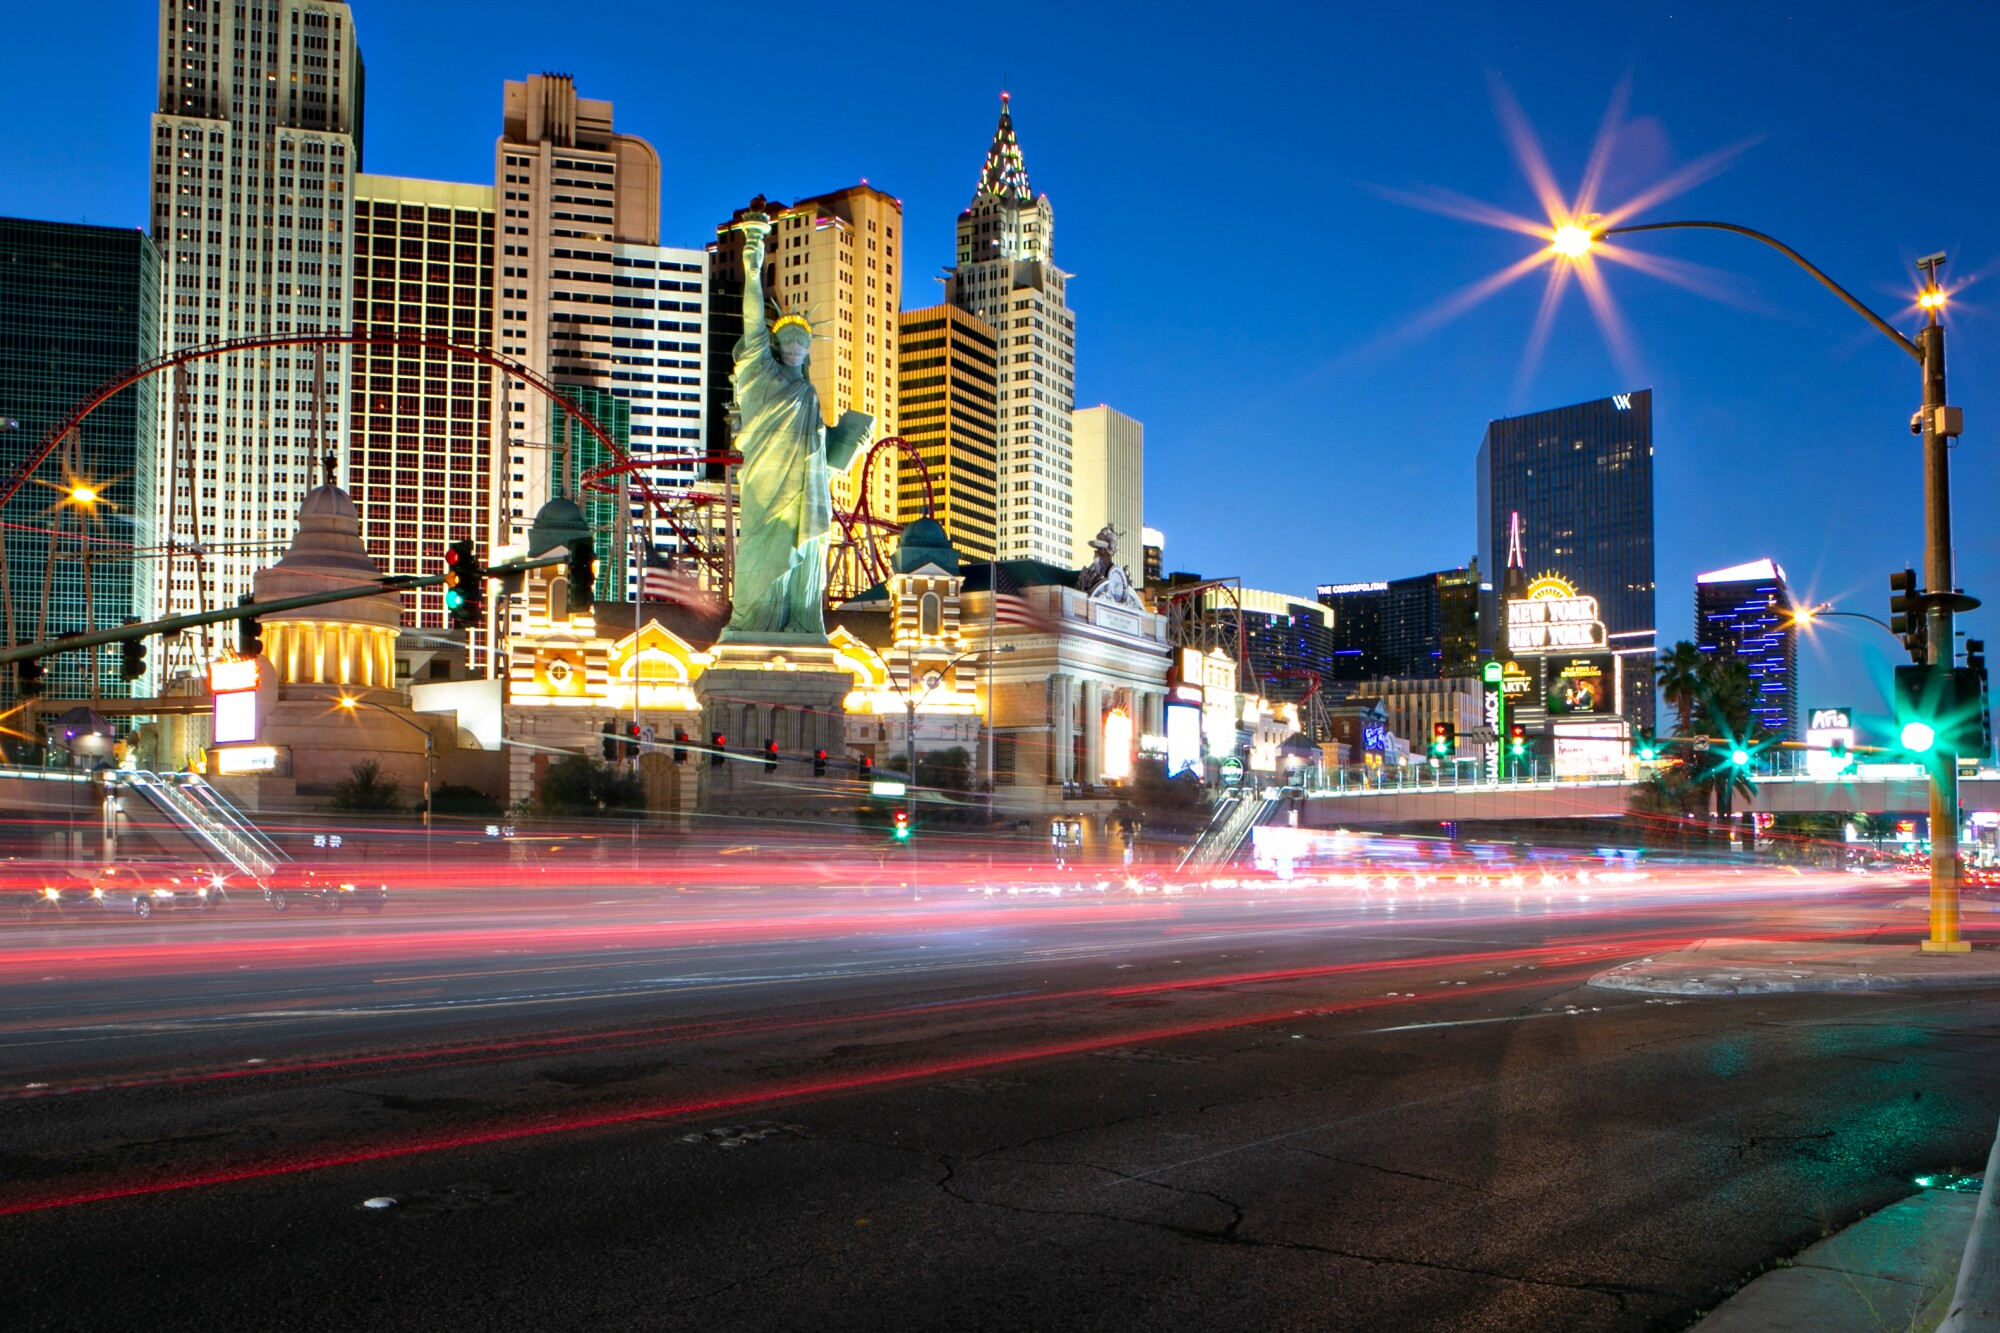 A view of the Las Vegas Strip with blurred headlights from passing cars.